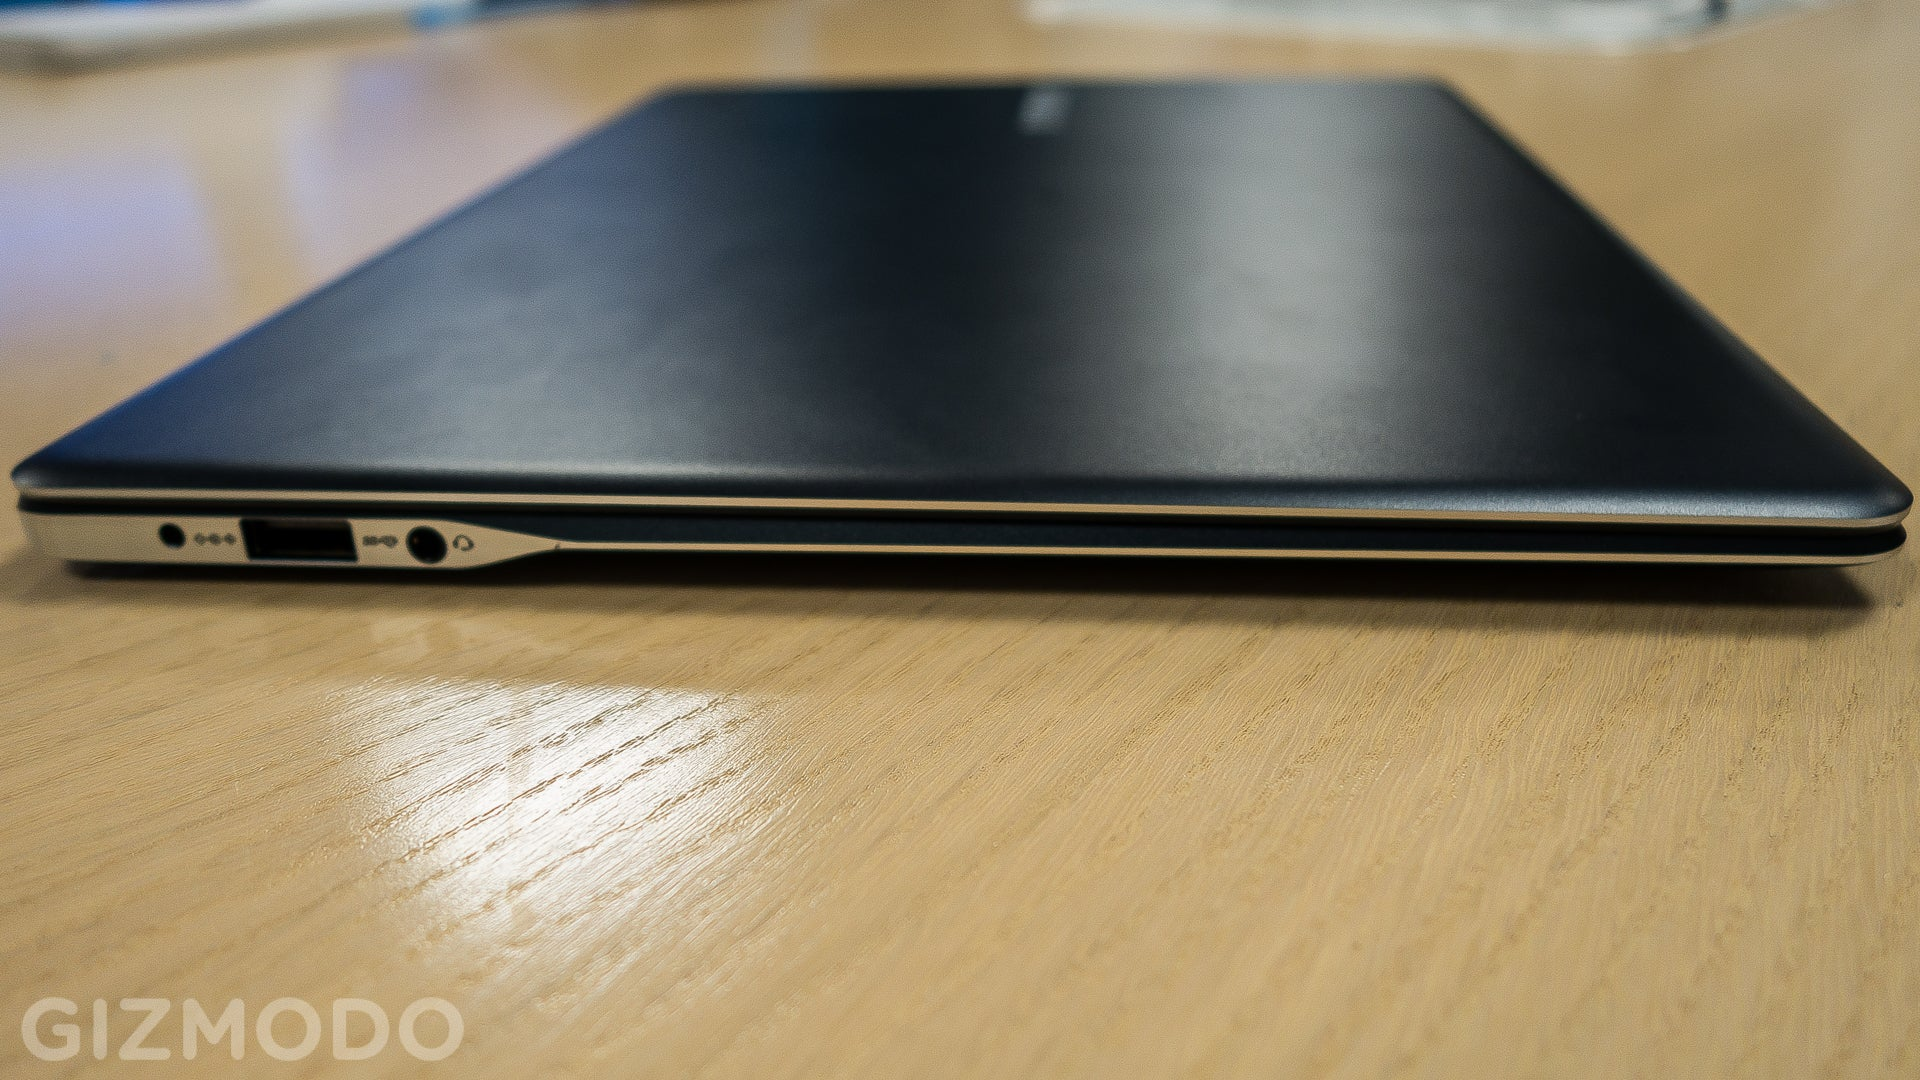 Samsung ATIV Book 9 2015: Slim, Slick, Lighter Than a MacBook Air